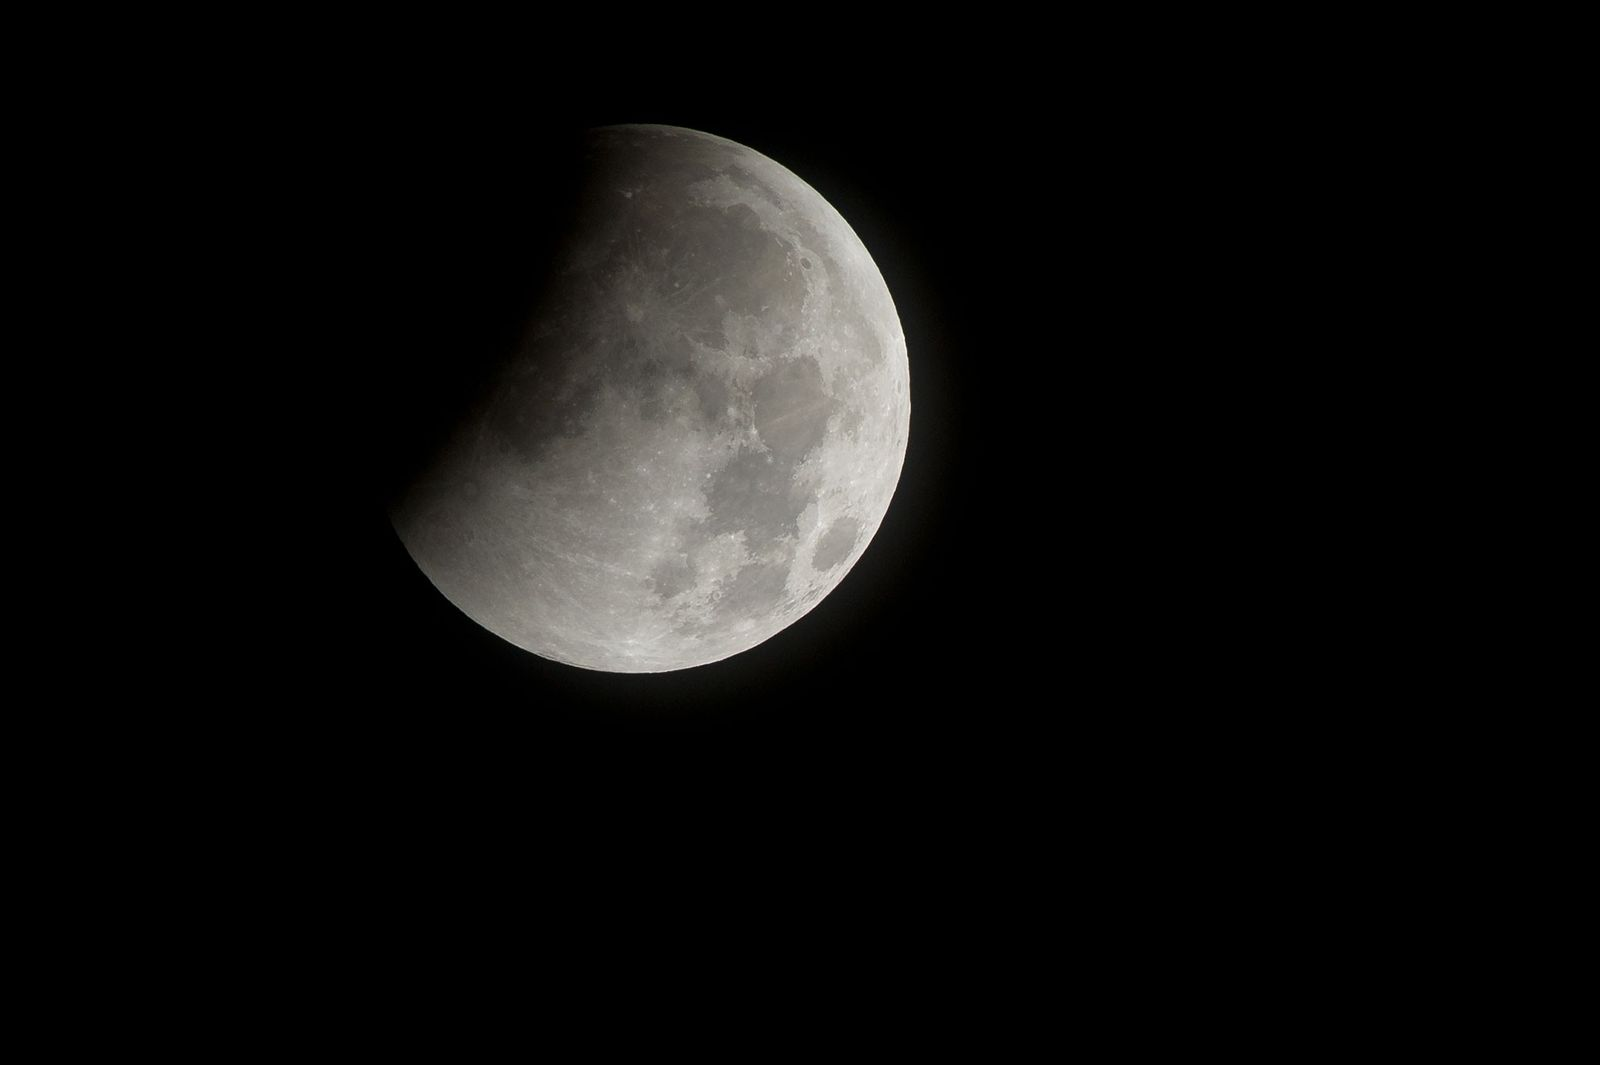 How to Watch the Longest 'Blood Moon' Eclipse of the Century